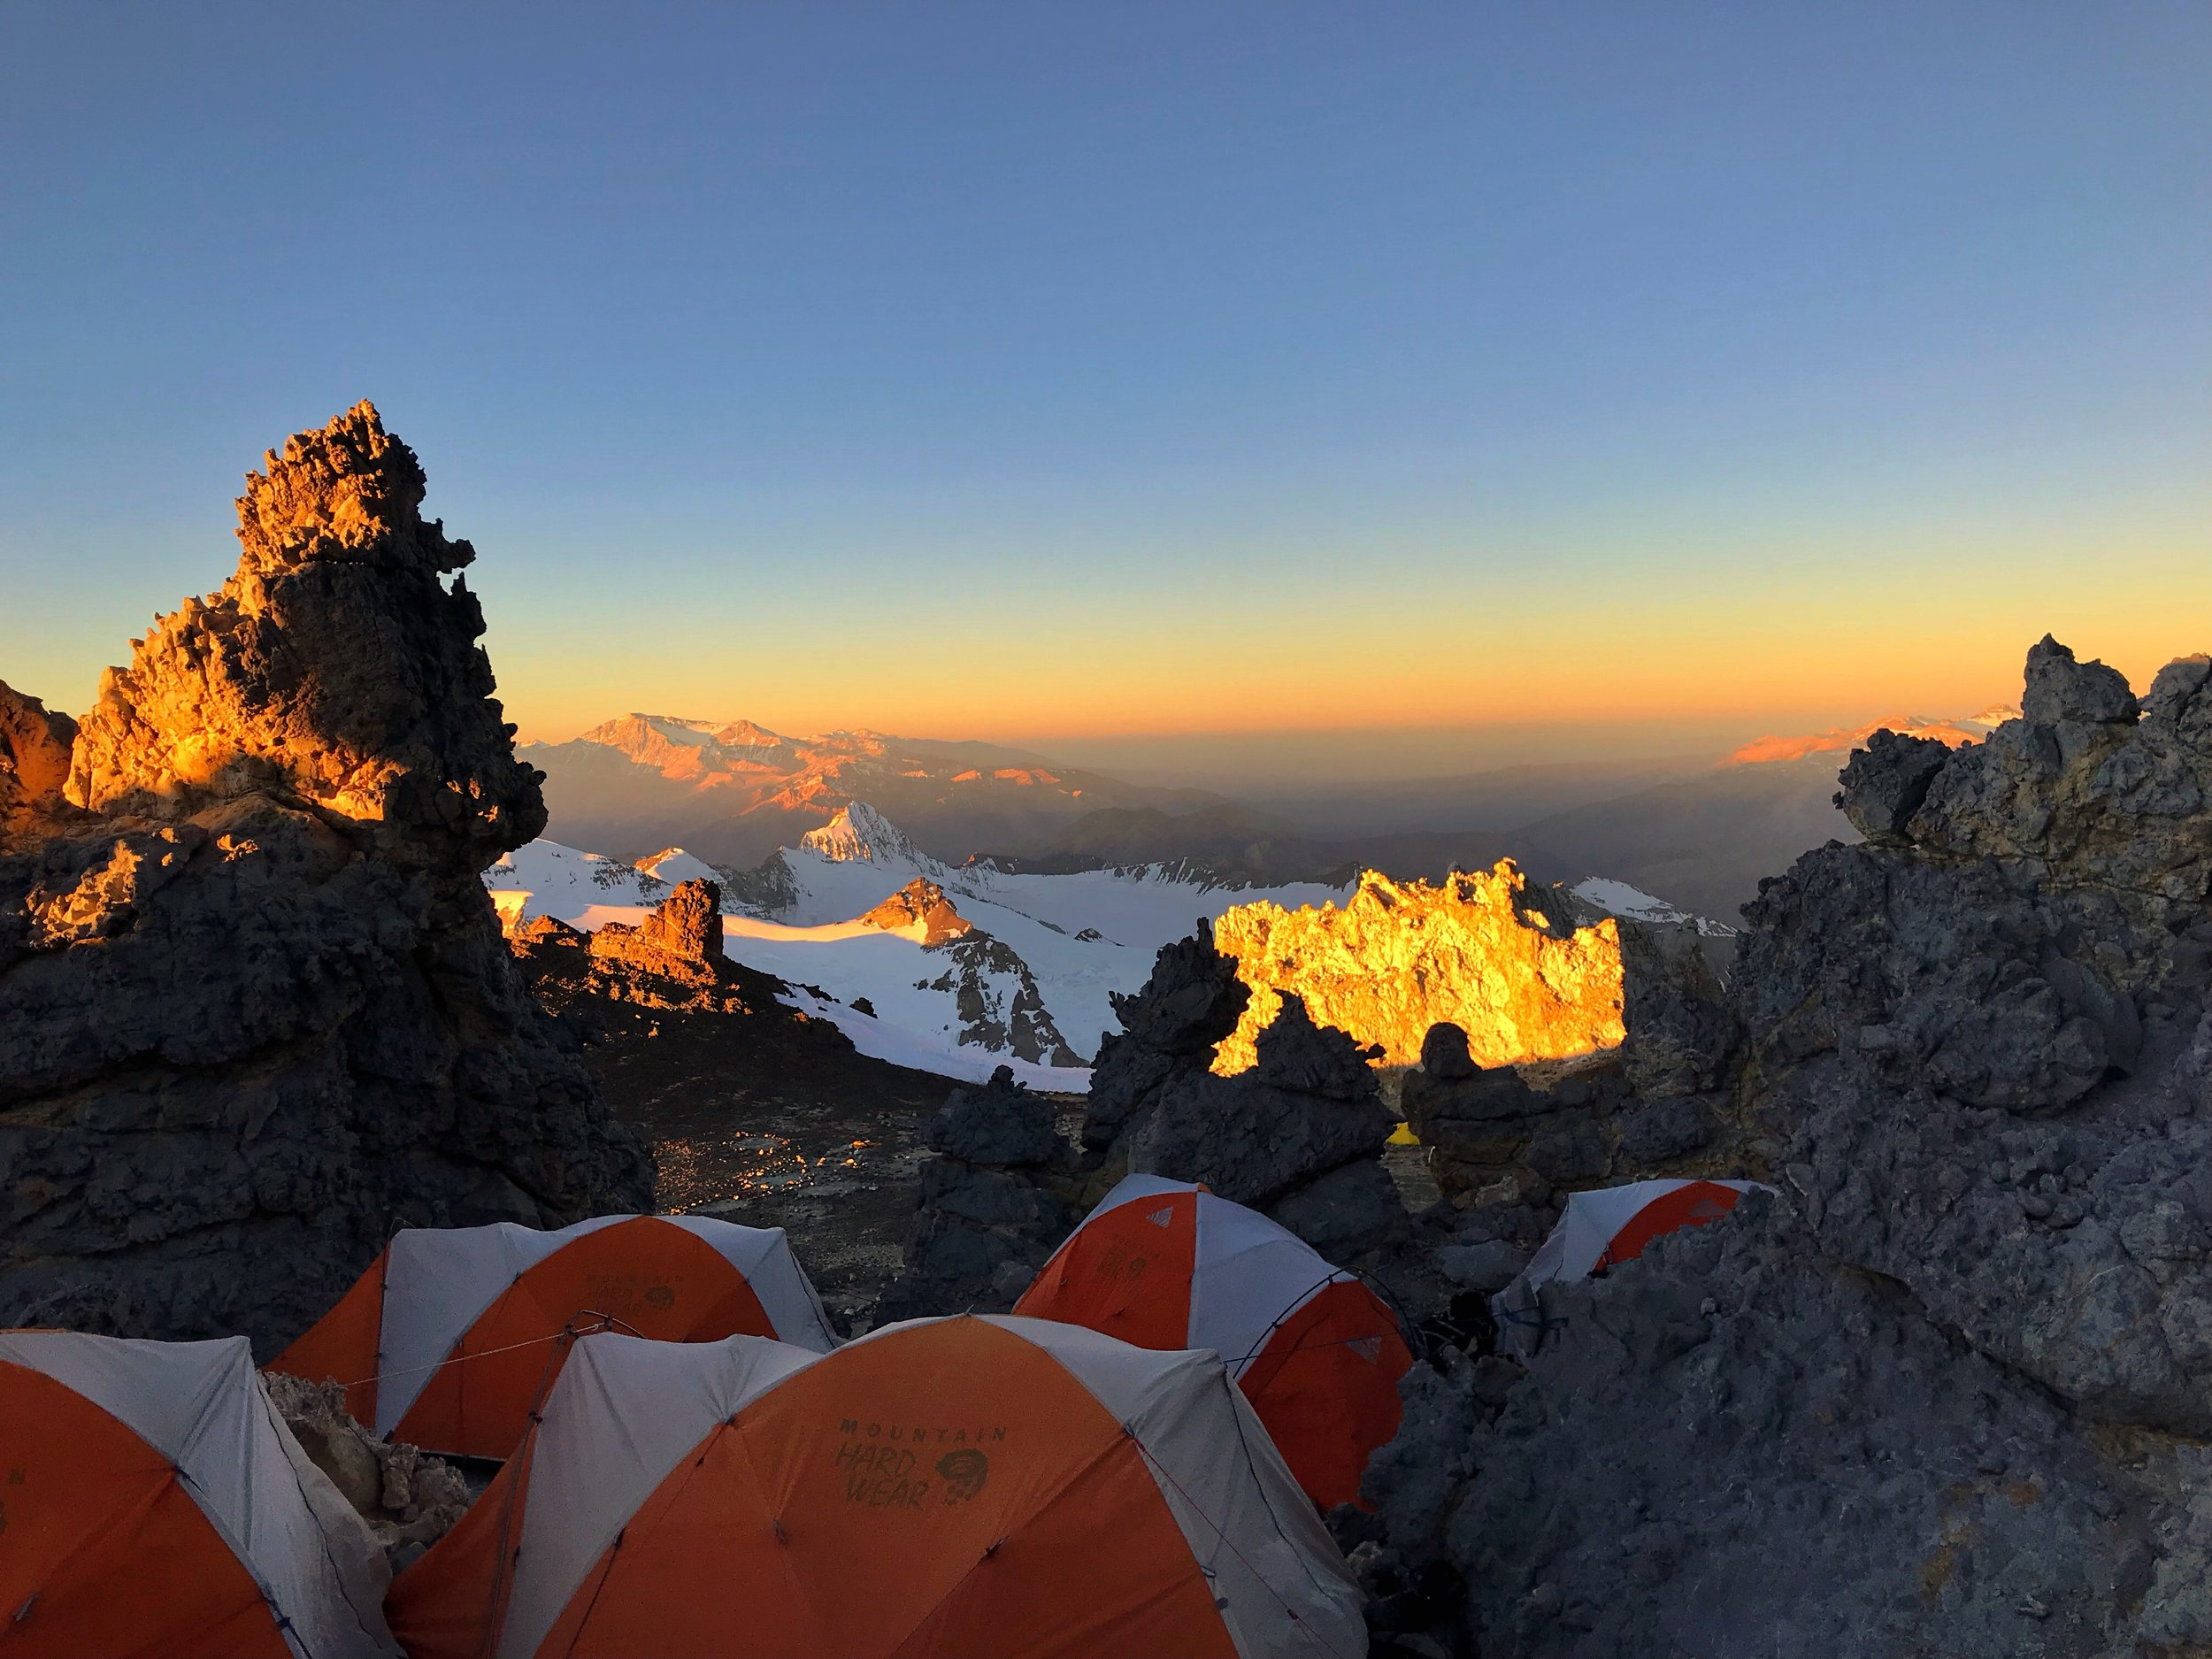 At camp before waiting to attack the summit